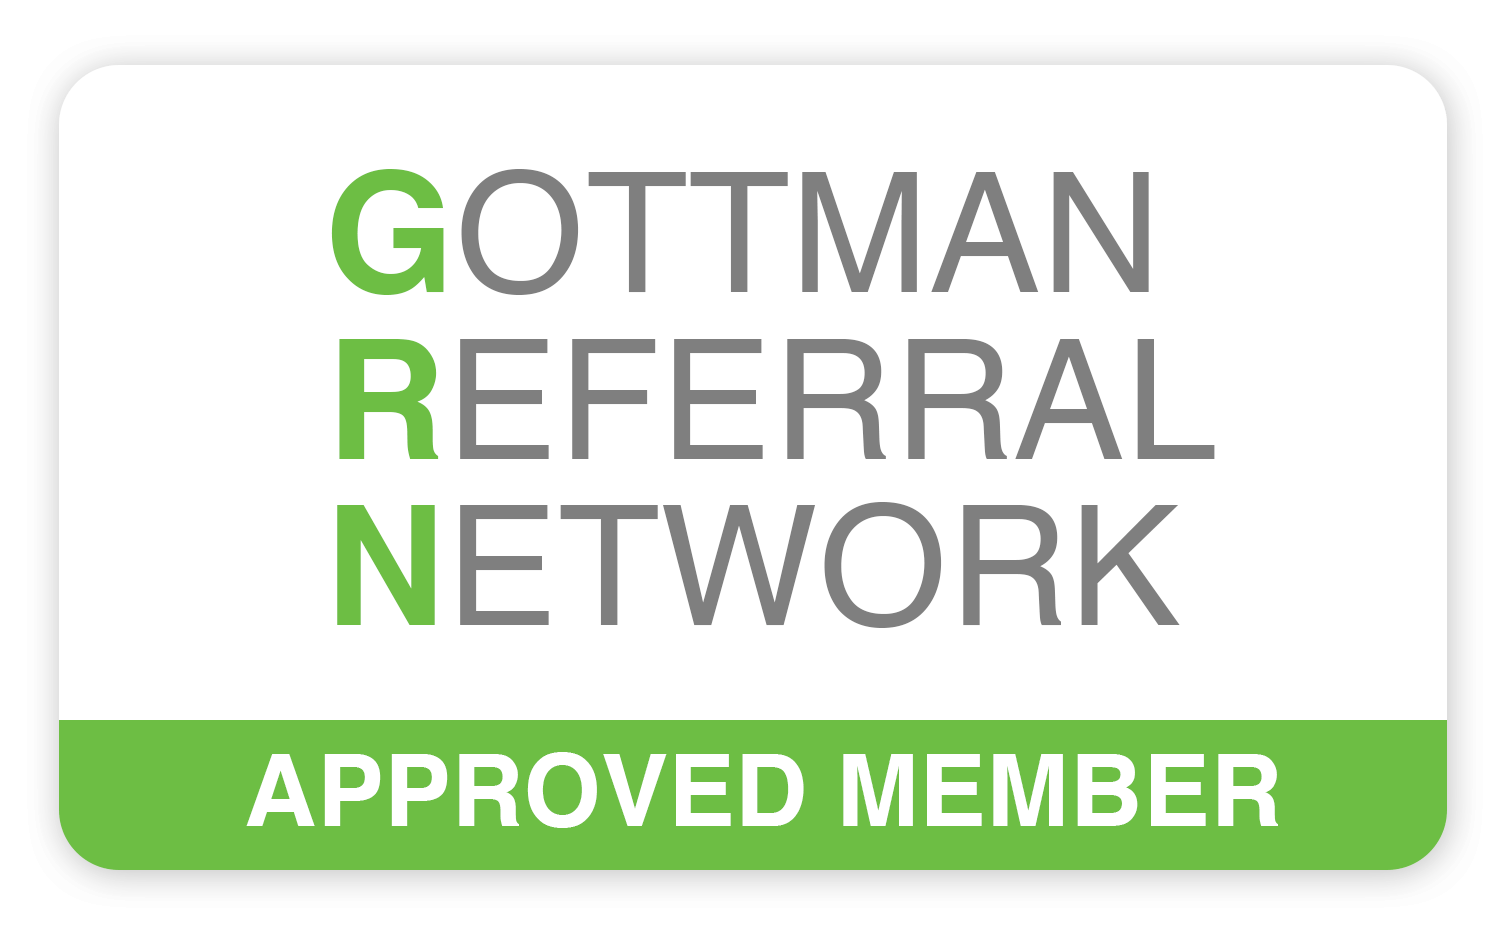 Jenny TeGrotenhuis's profile on the Gottman Referral Network